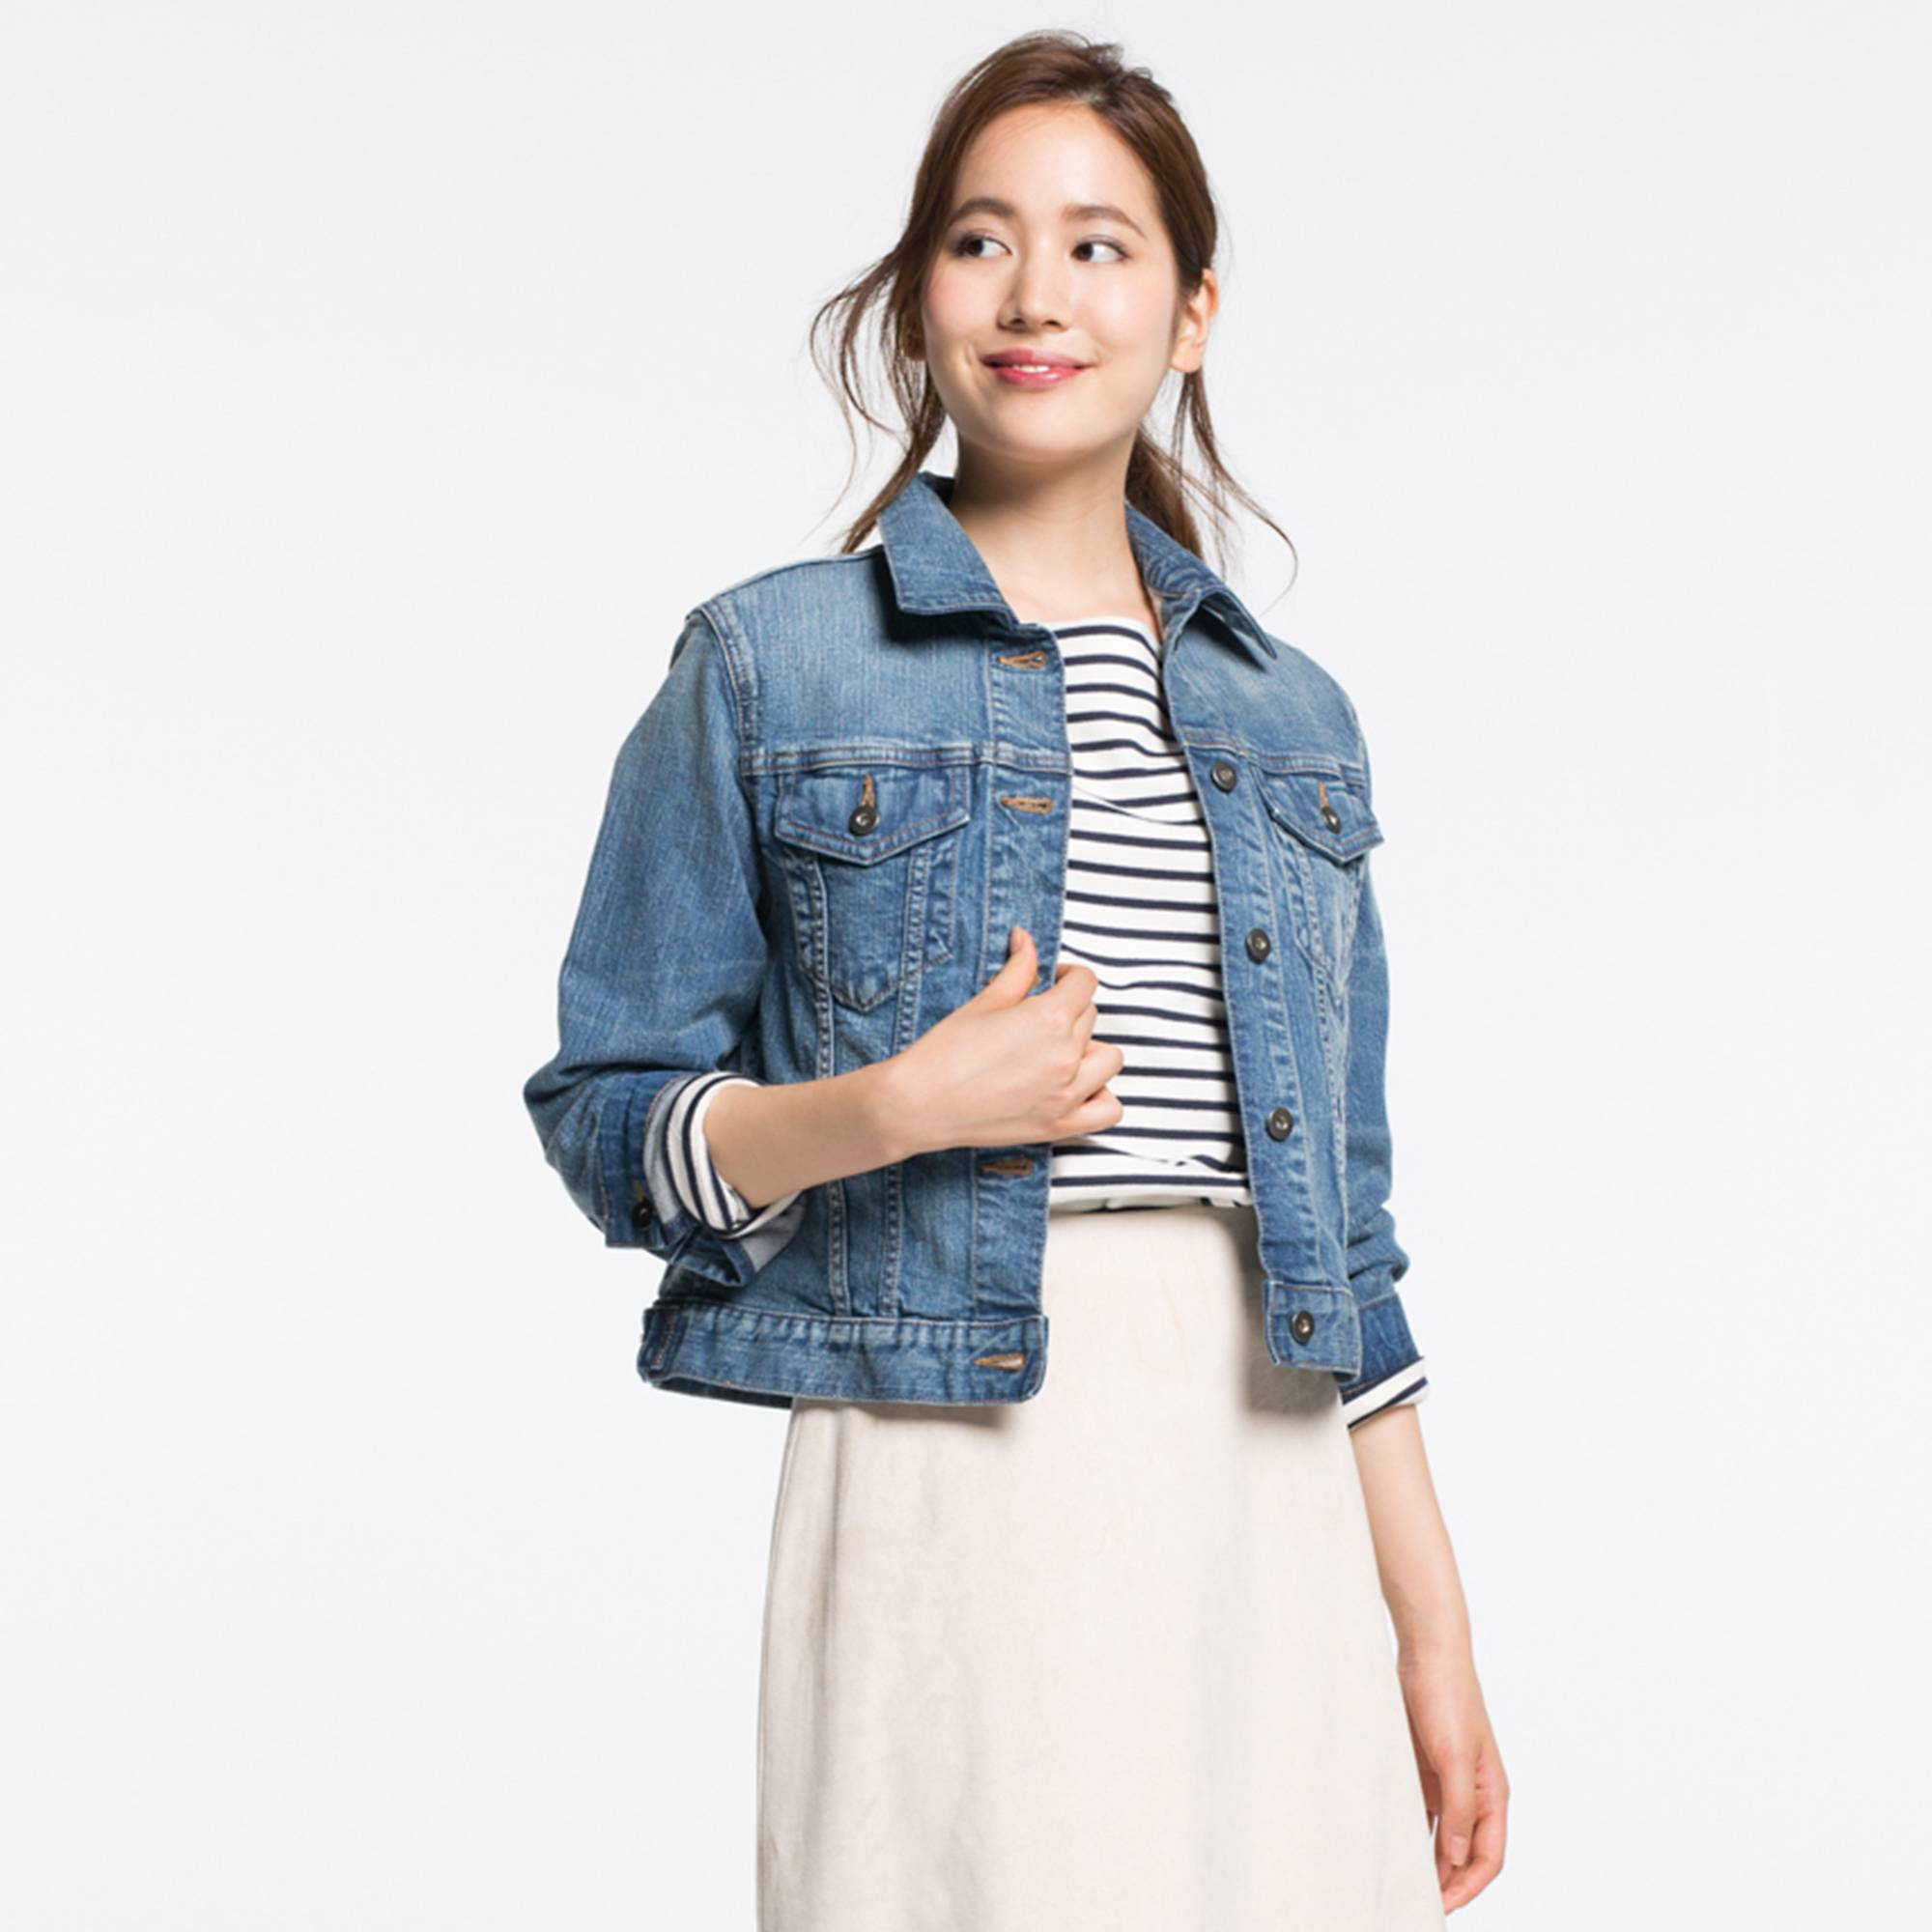 Importance of wearing stylish denim vest for women